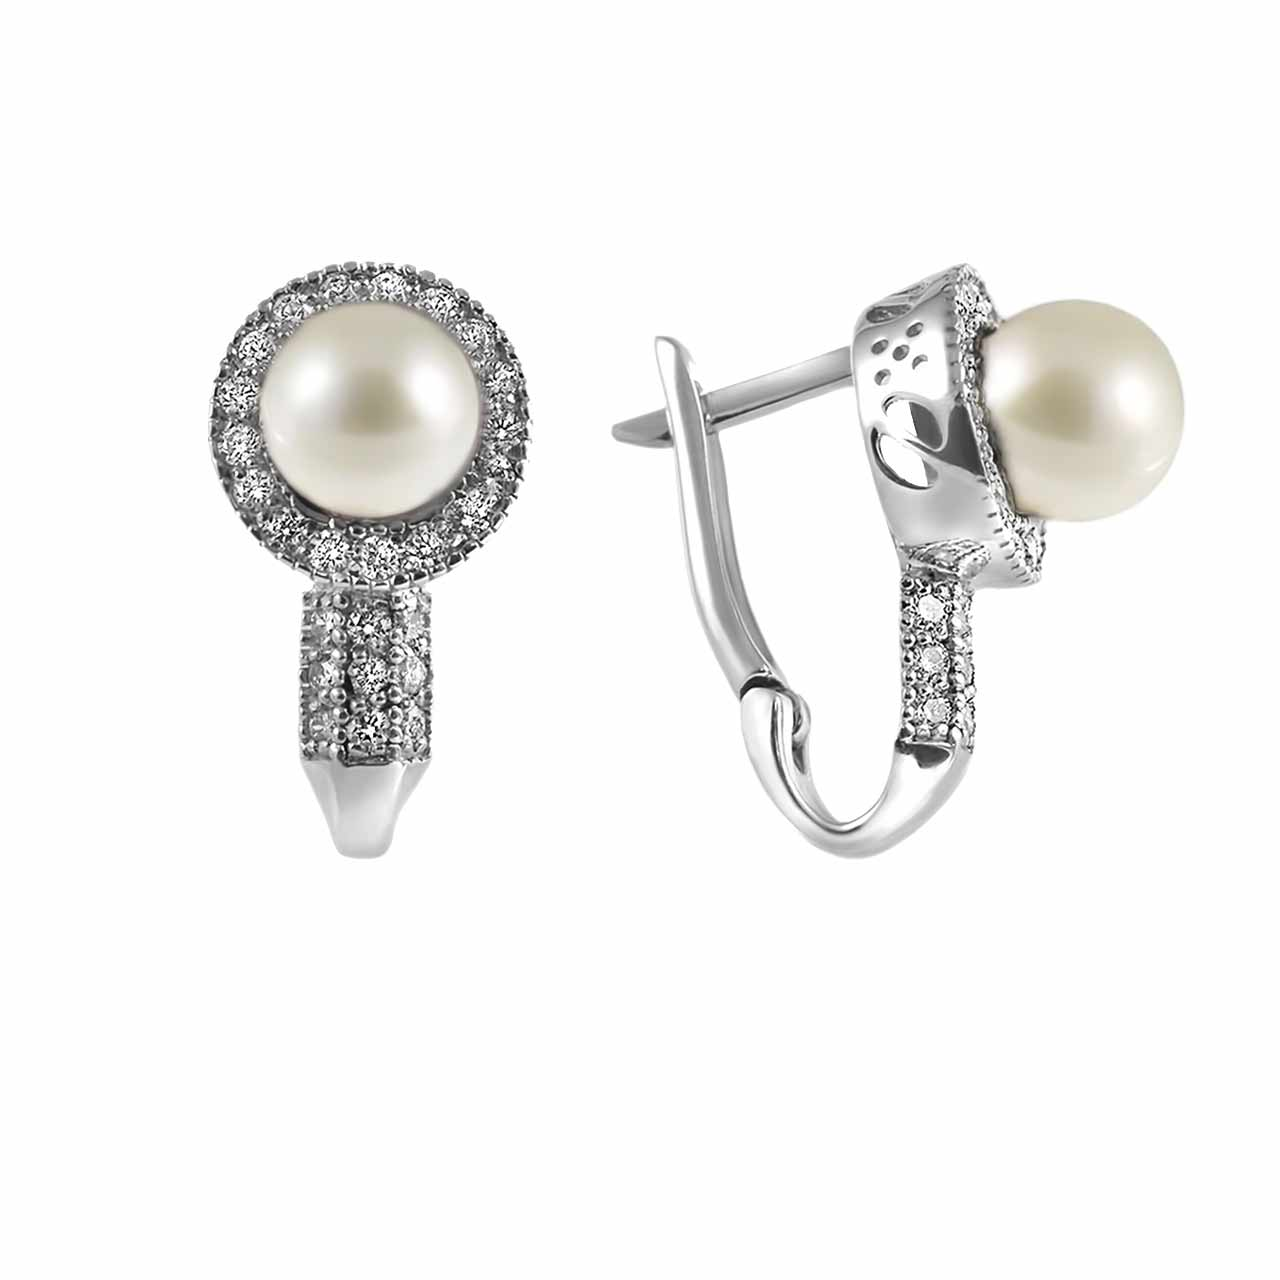 8mm white pearl earrings on sale 1